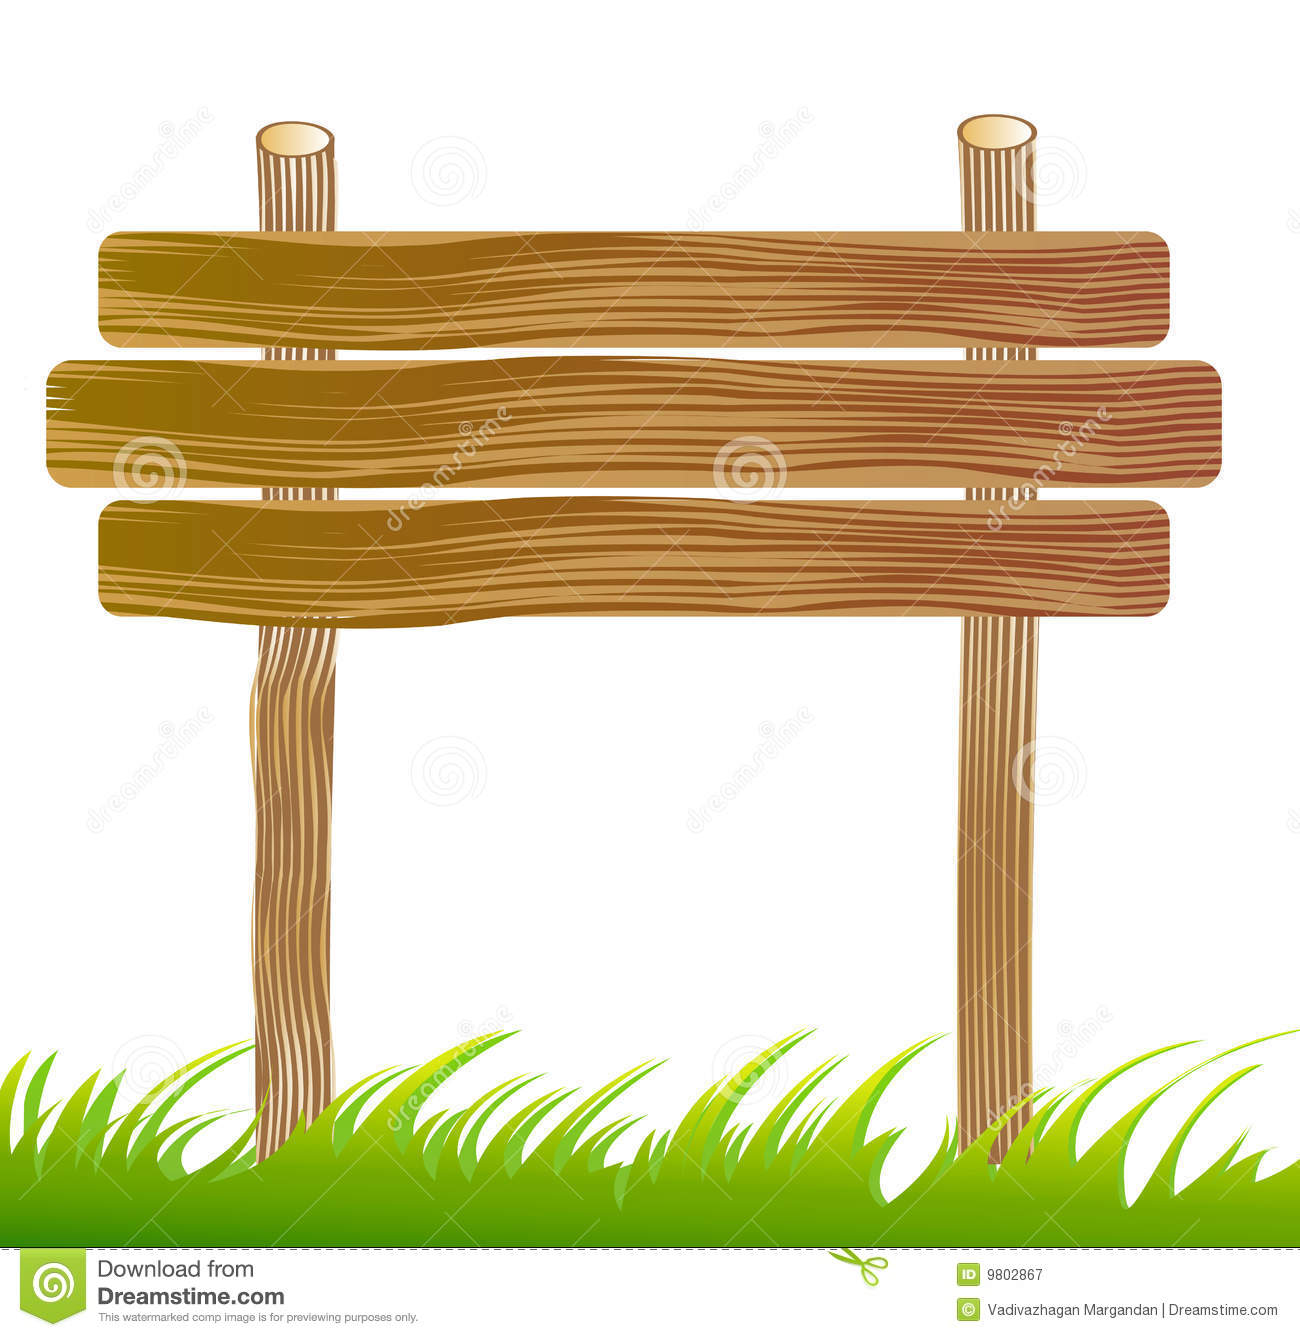 Wooden board clipart suggest